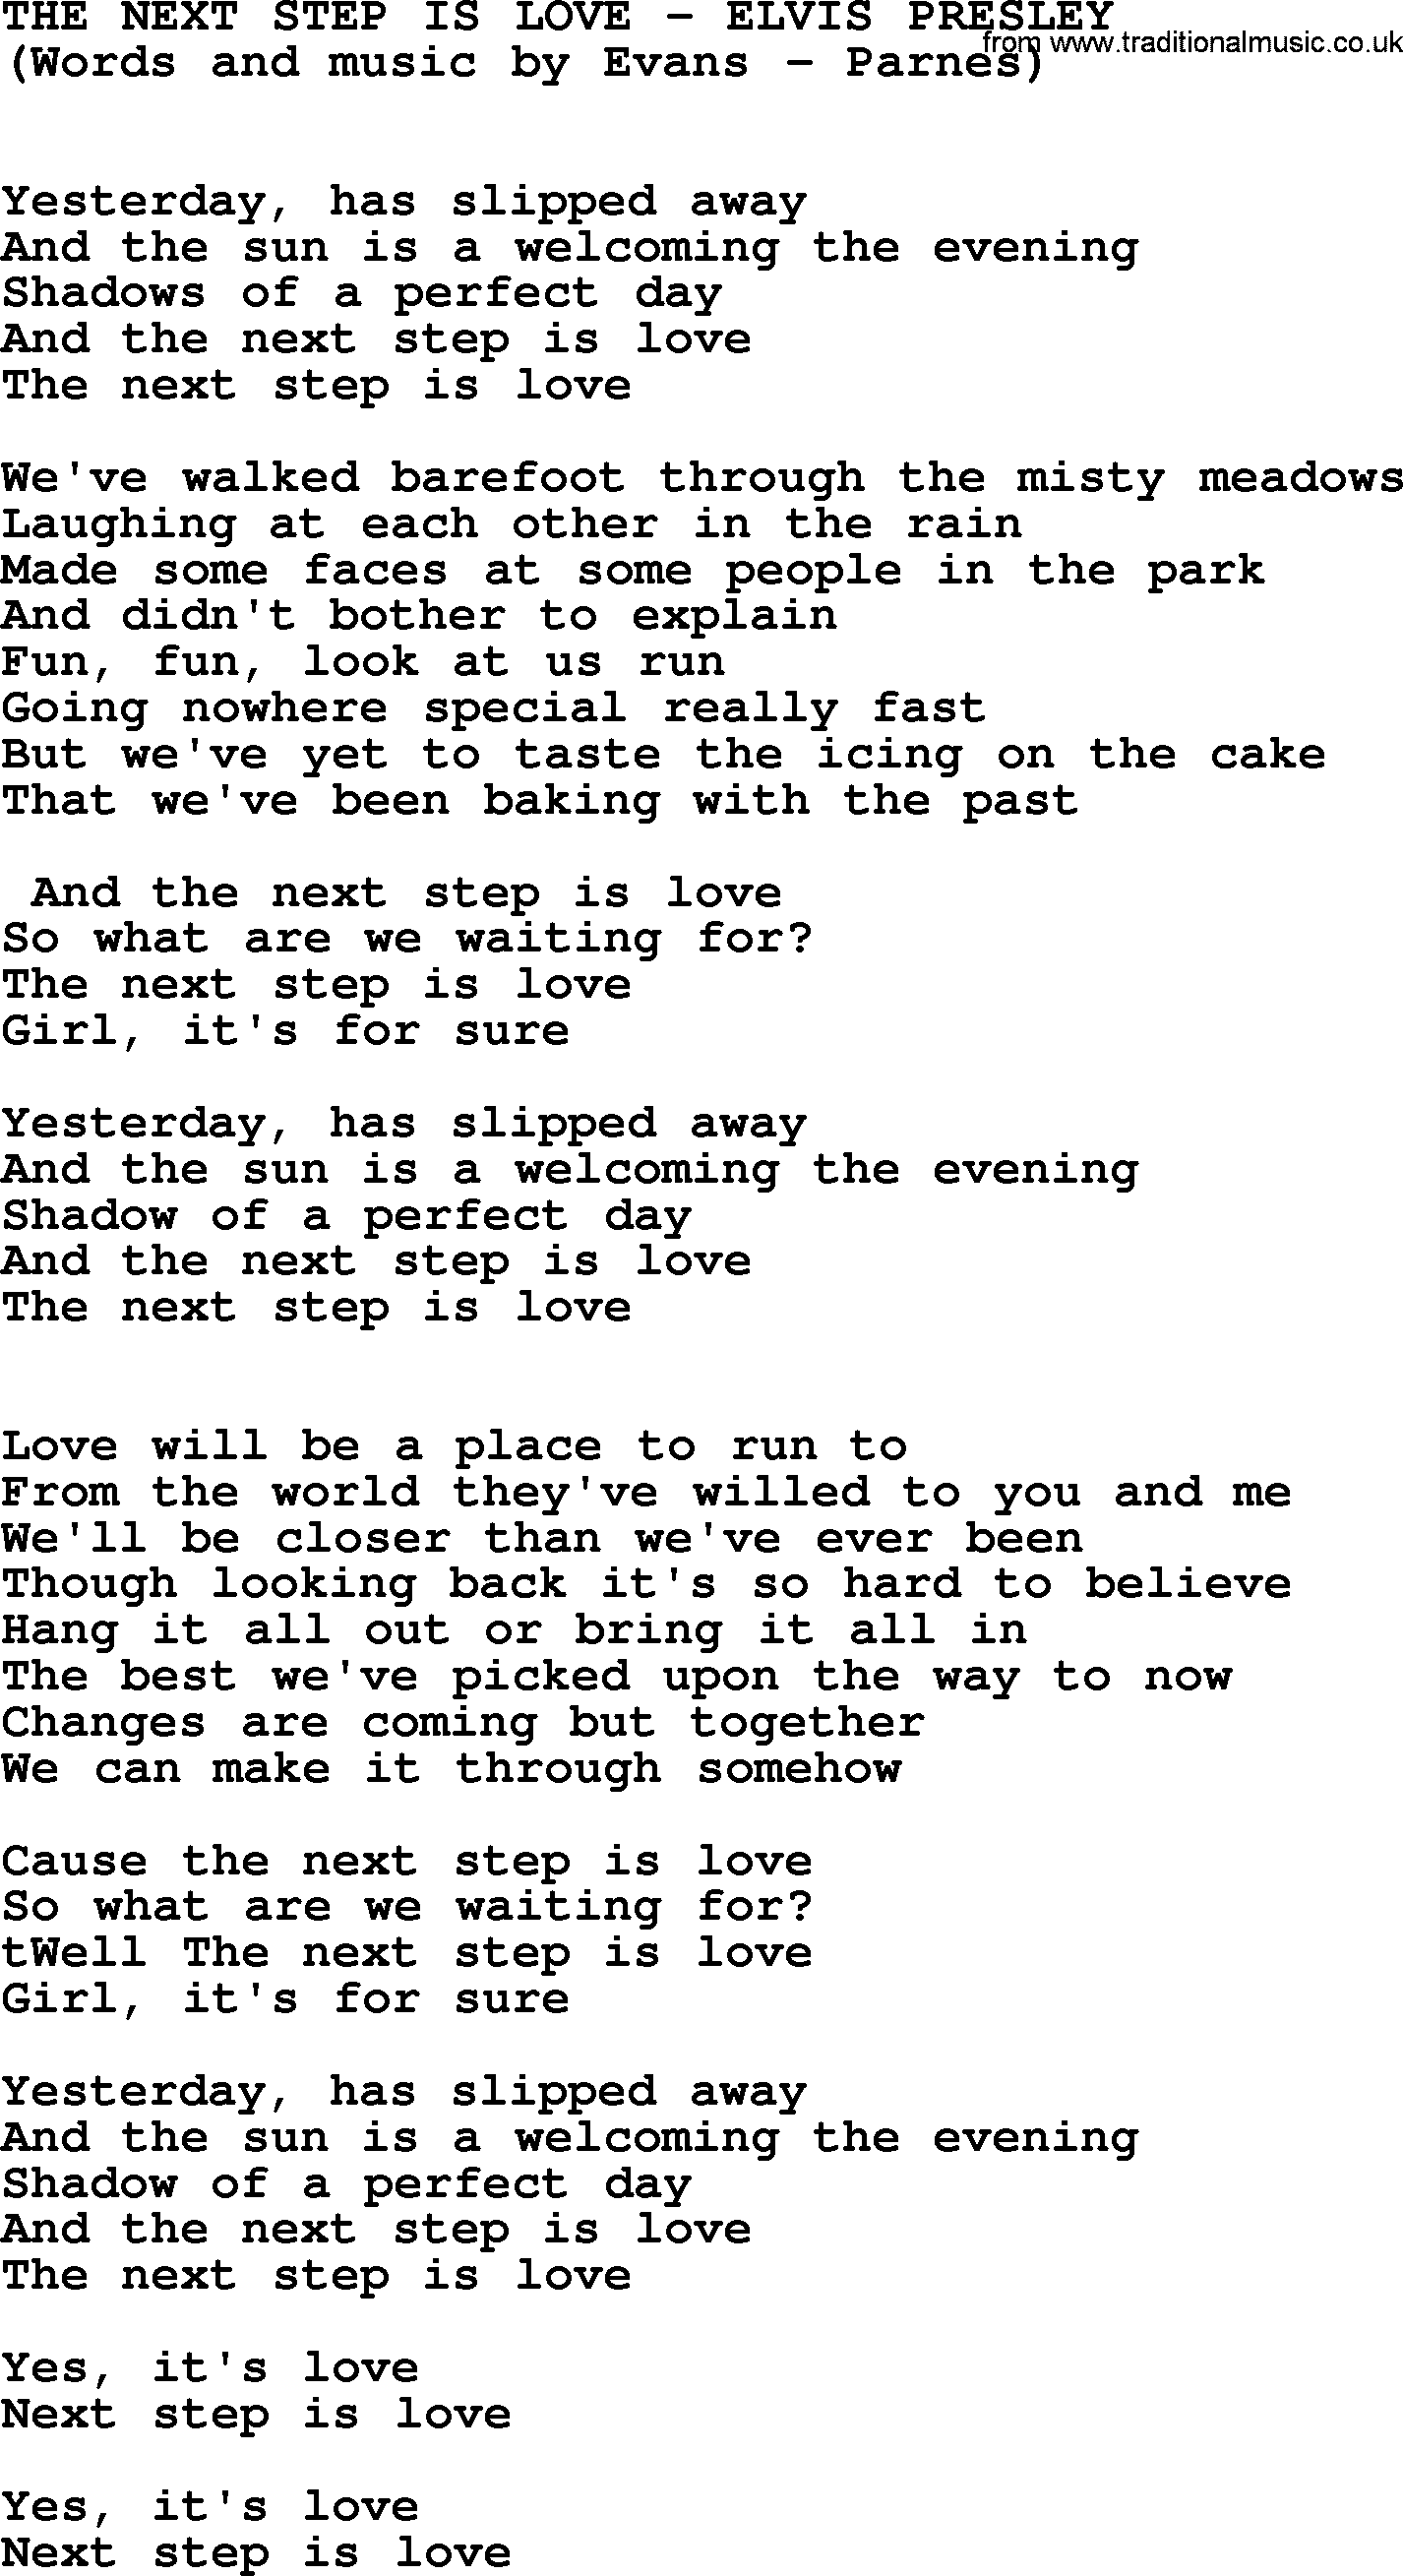 The Next Step Is Love by Elvis Presley - lyrics